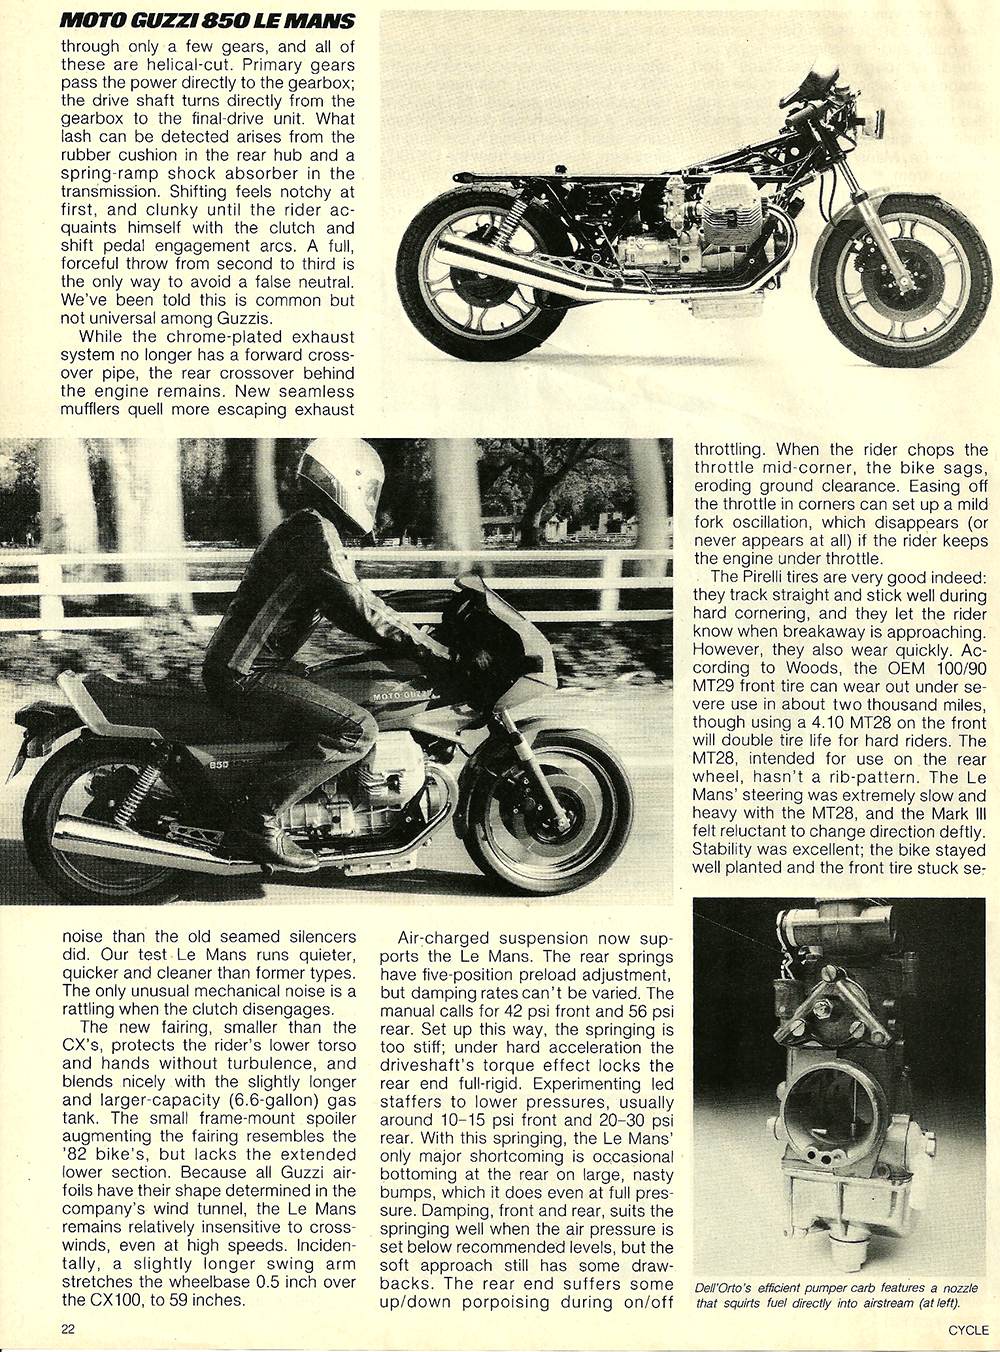 1983 Moto Guzzi 850 Lemans 3 road test 5.jpg